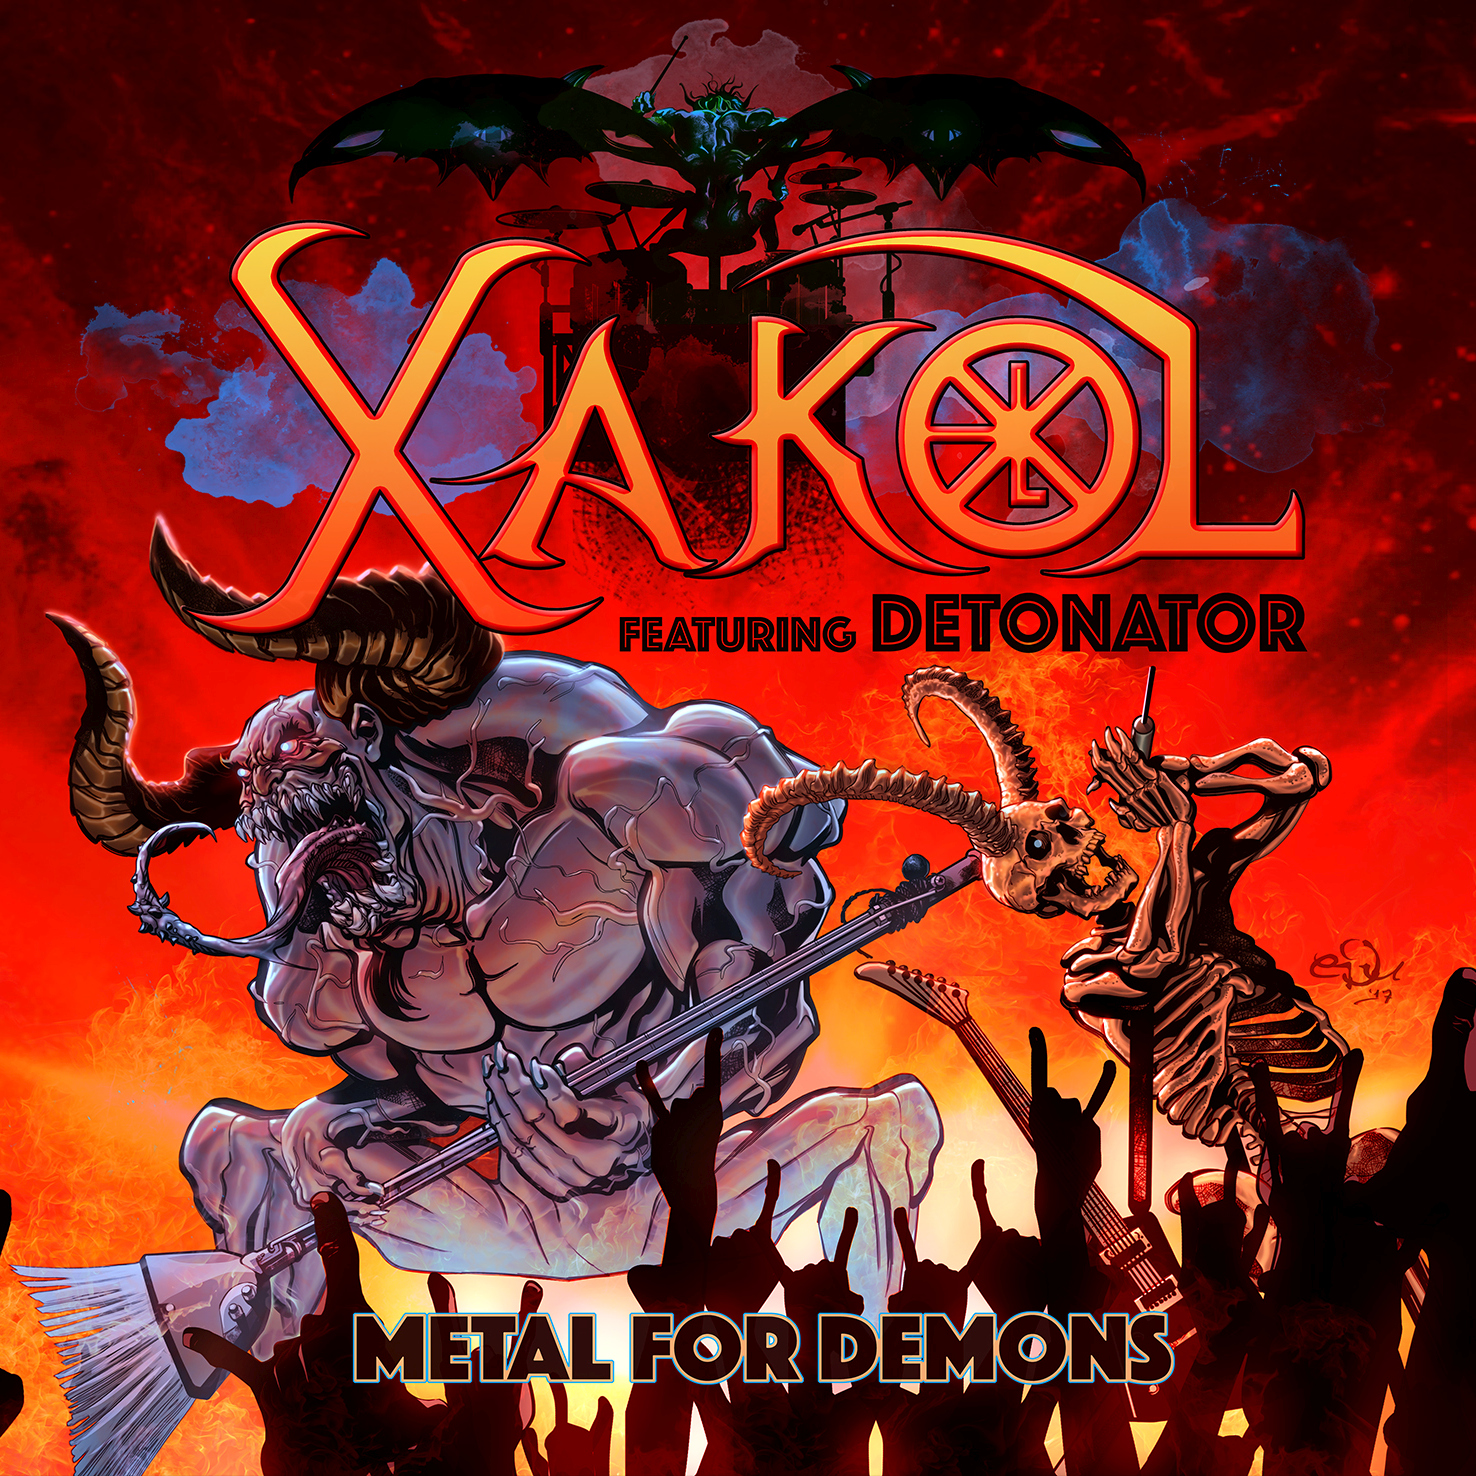 Xakol - Metal for Demons